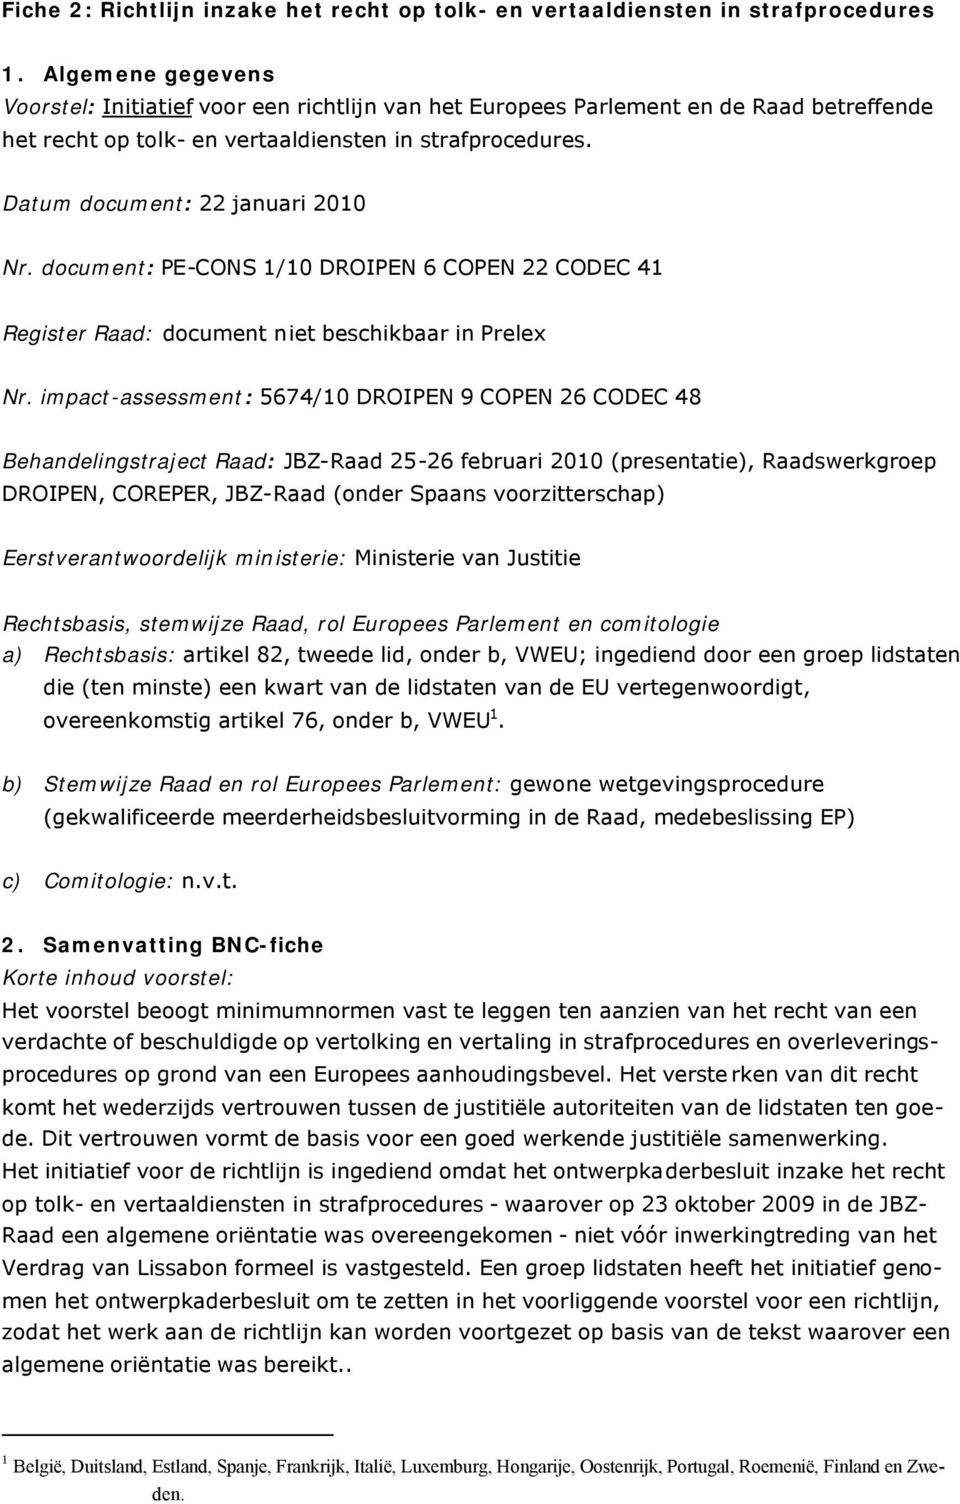 Datum document: 22 januari 2010 Nr. document: PE-CONS 1/10 DROIPEN 6 COPEN 22 CODEC 41 Register Raad: document niet beschikbaar in Prelex Nr.